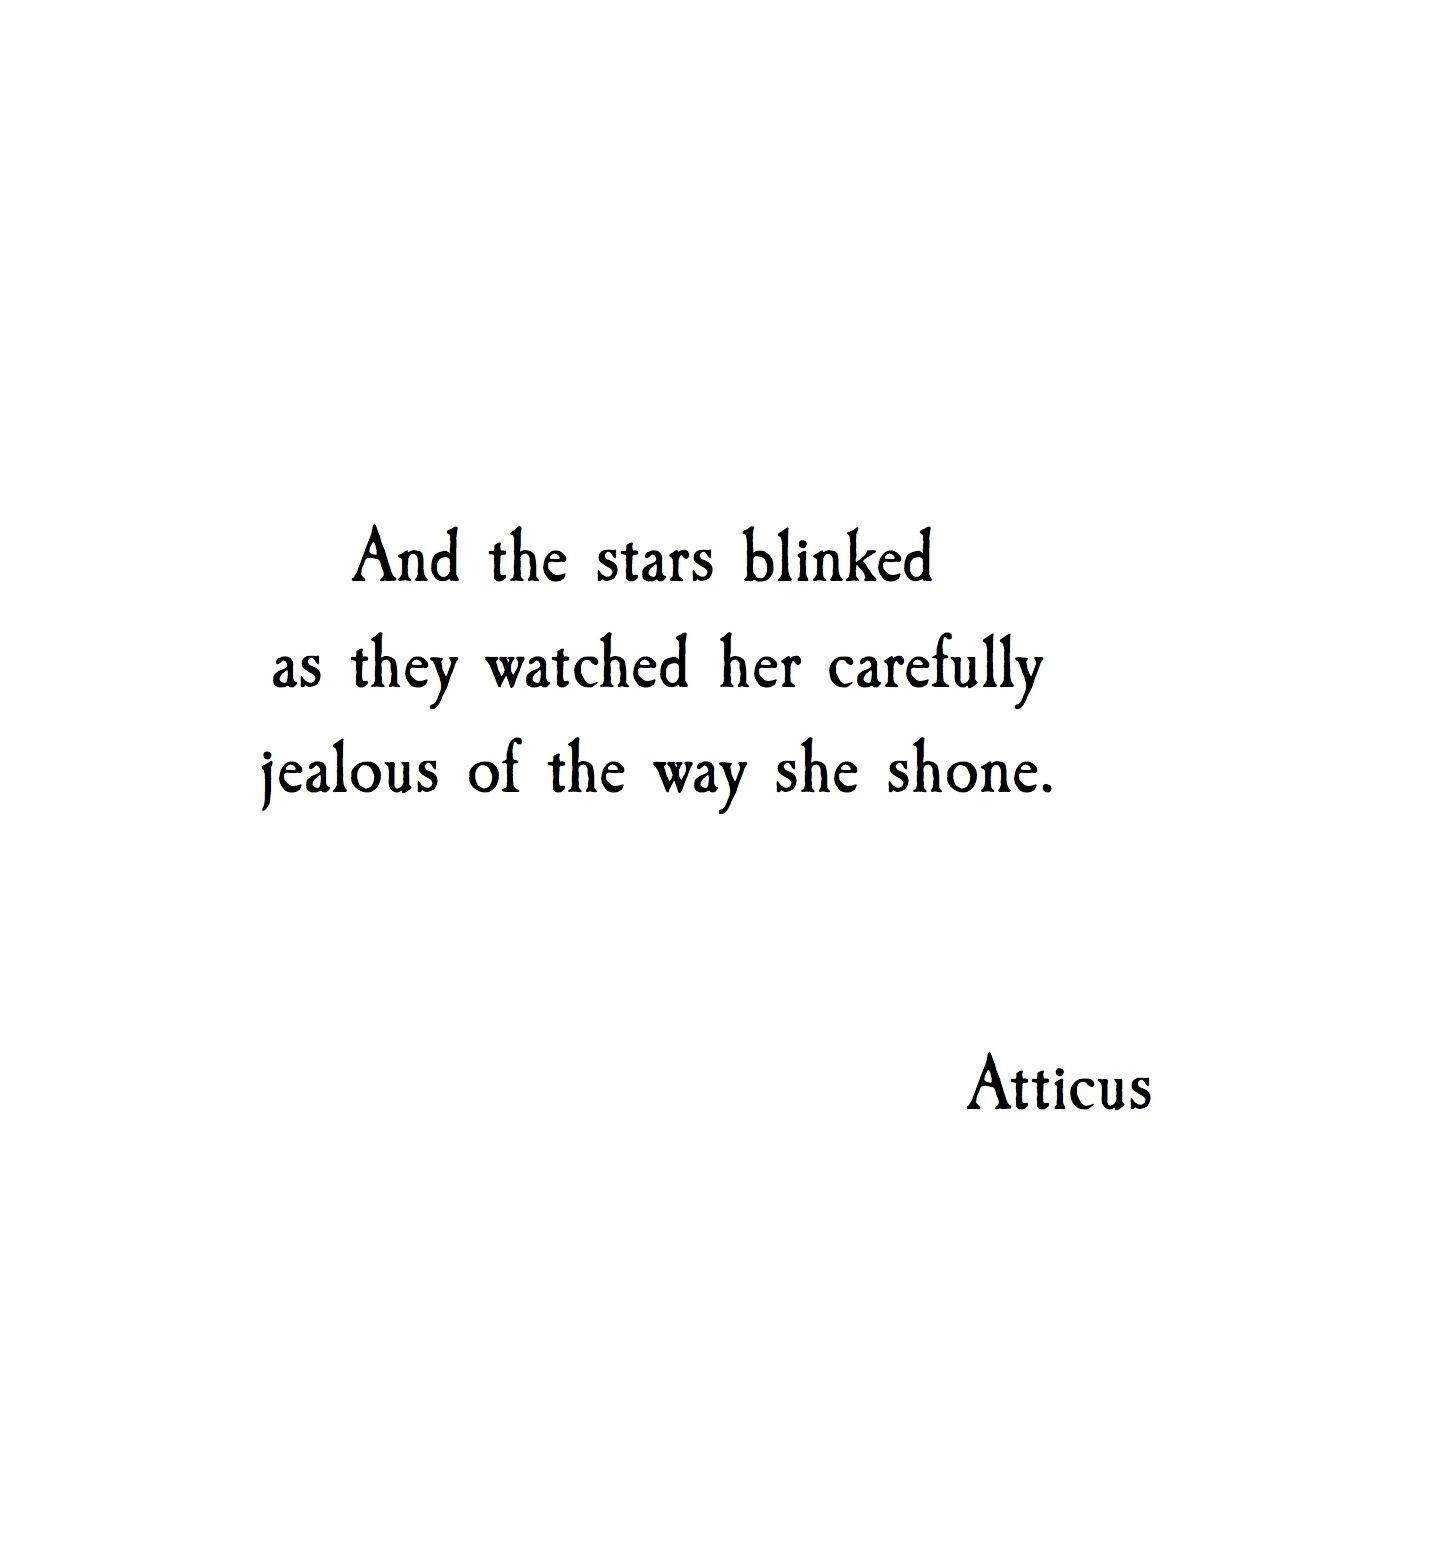 Real Life Poems Quotes Atticus Poetry On  Poem Poem Quotes And Star